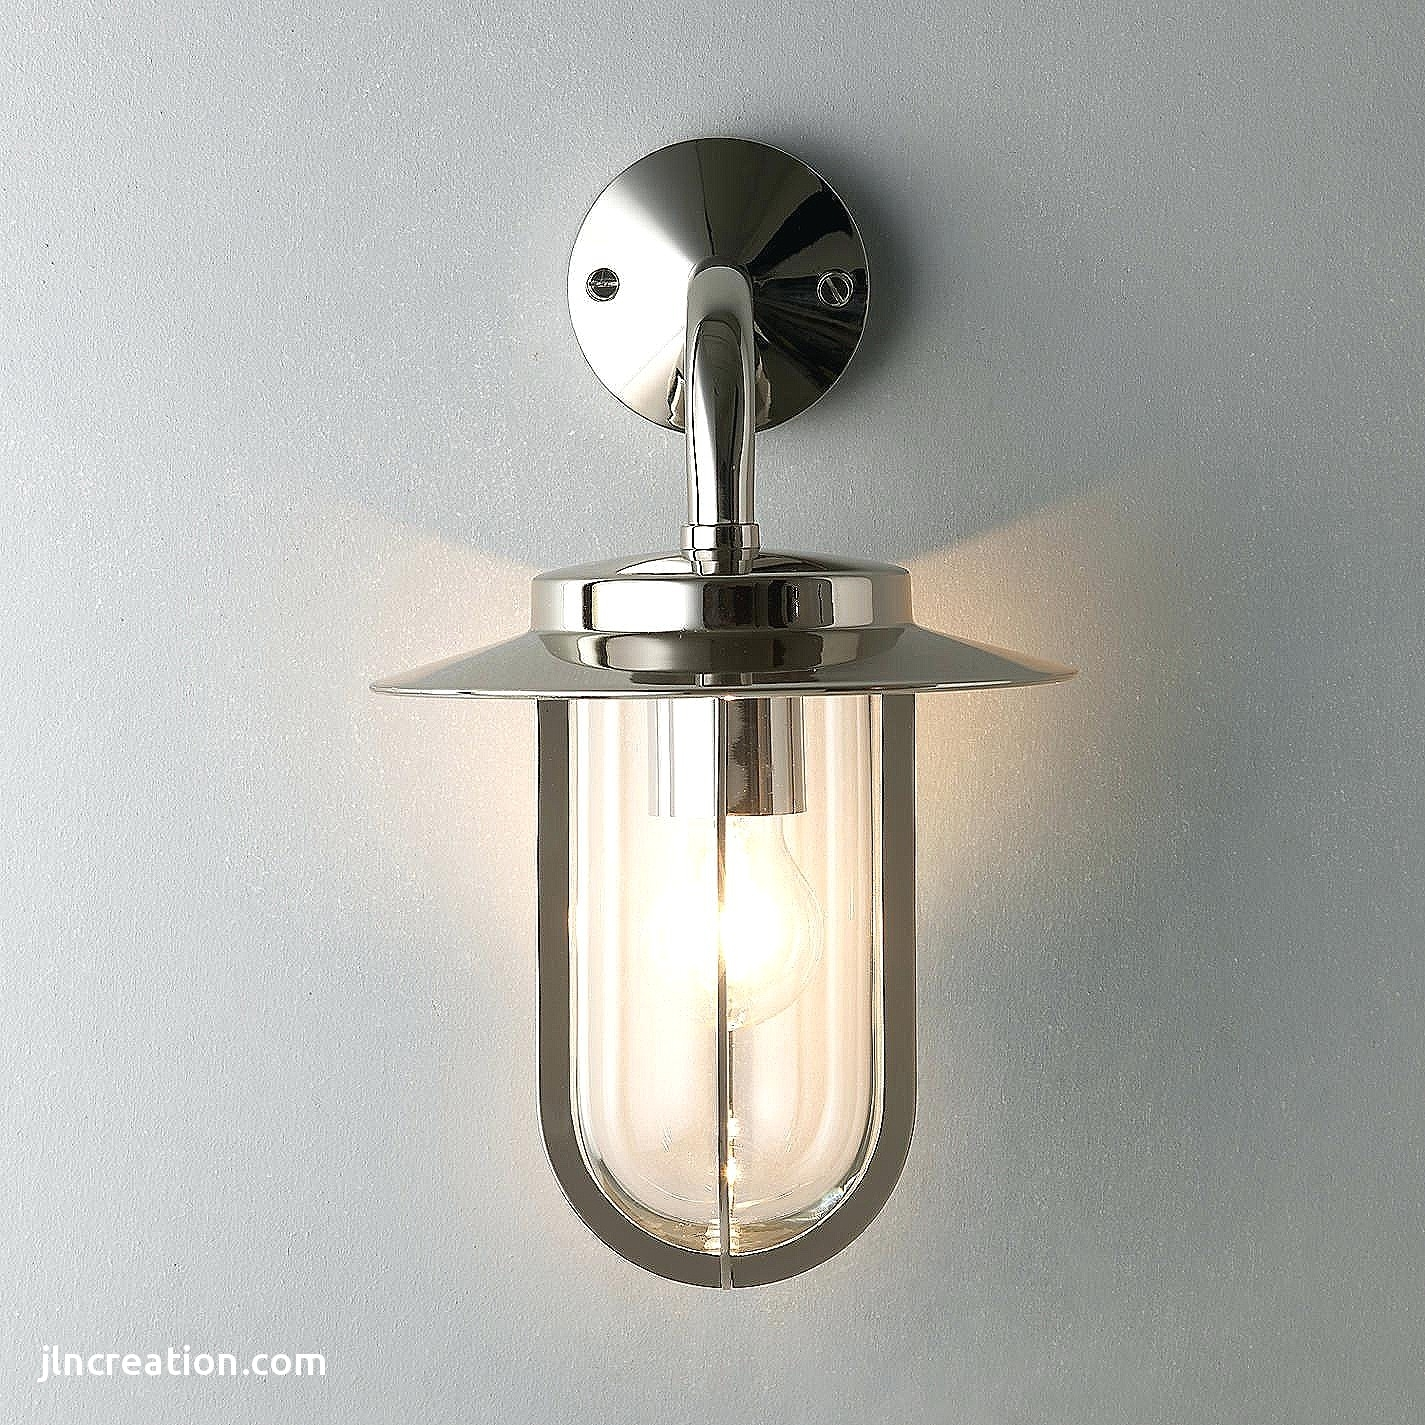 Inspiration about Dusk To Dawn Outdoor Wall Light Elegant Outdoor Wall Light Motion With Regard To Outdoor Wall Lighting With Sensor (#7 of 15)